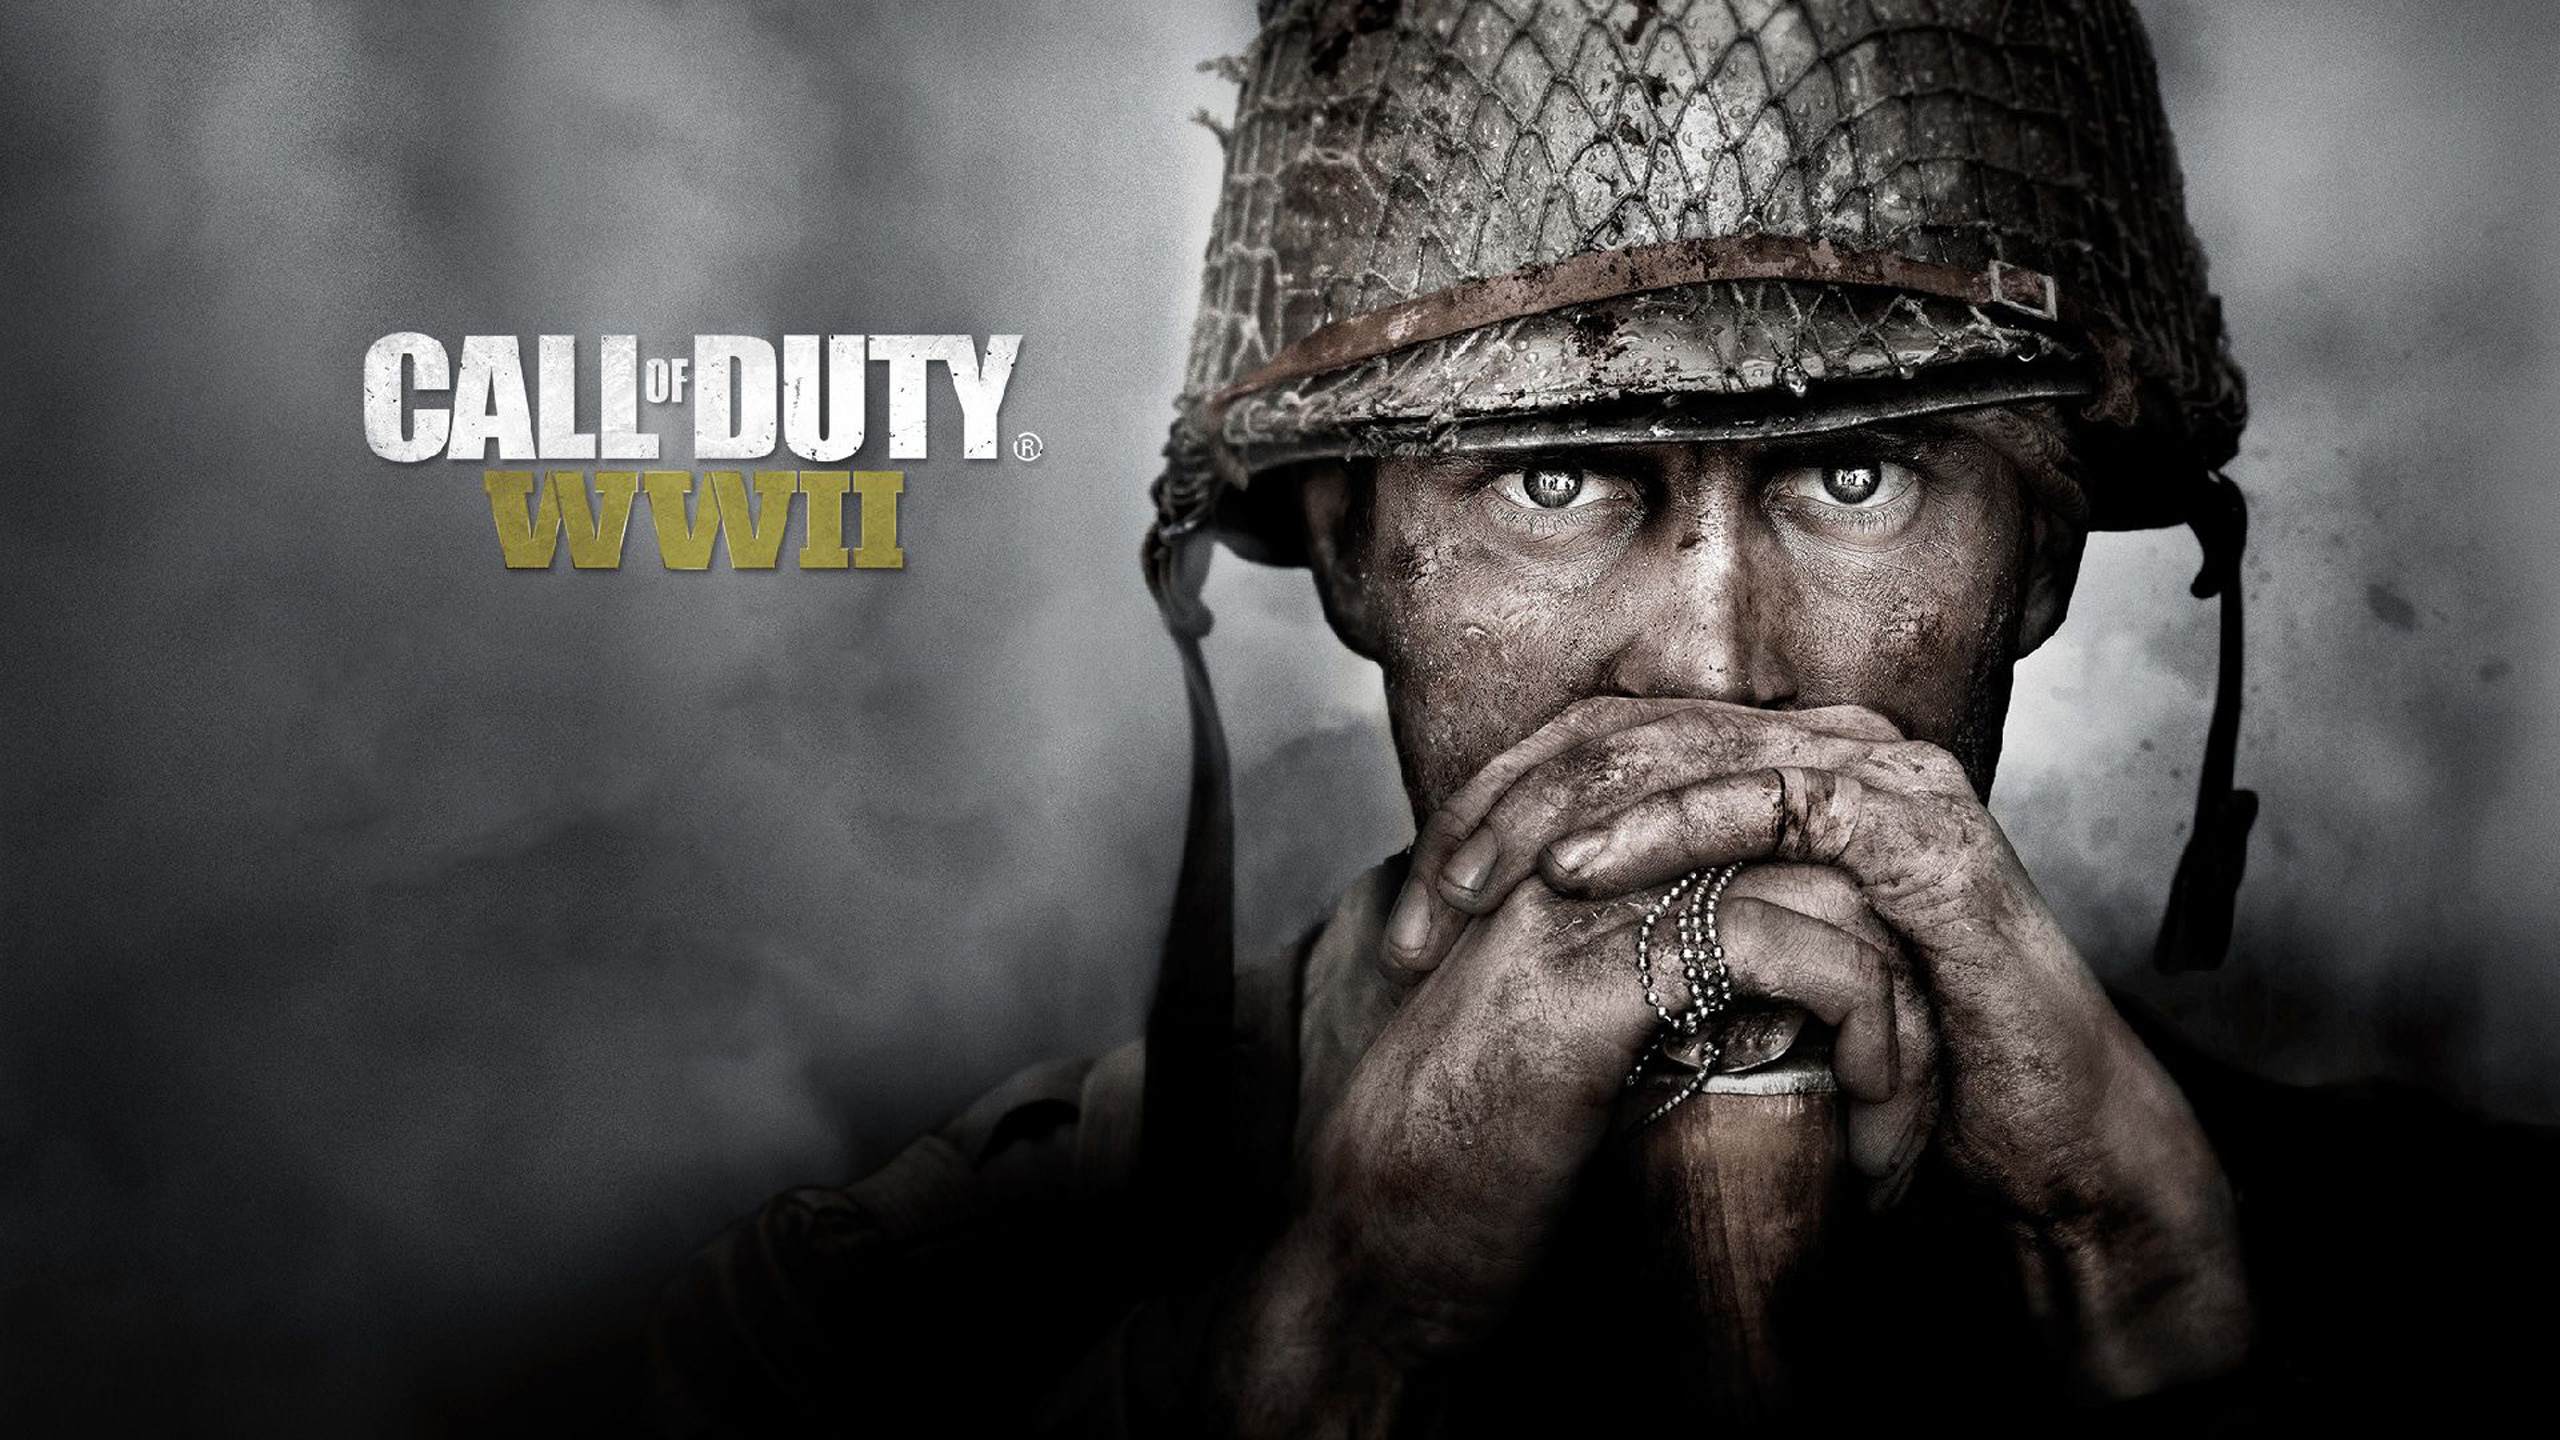 wallpaper call of duty wwii, hd, 2017, games, #7315